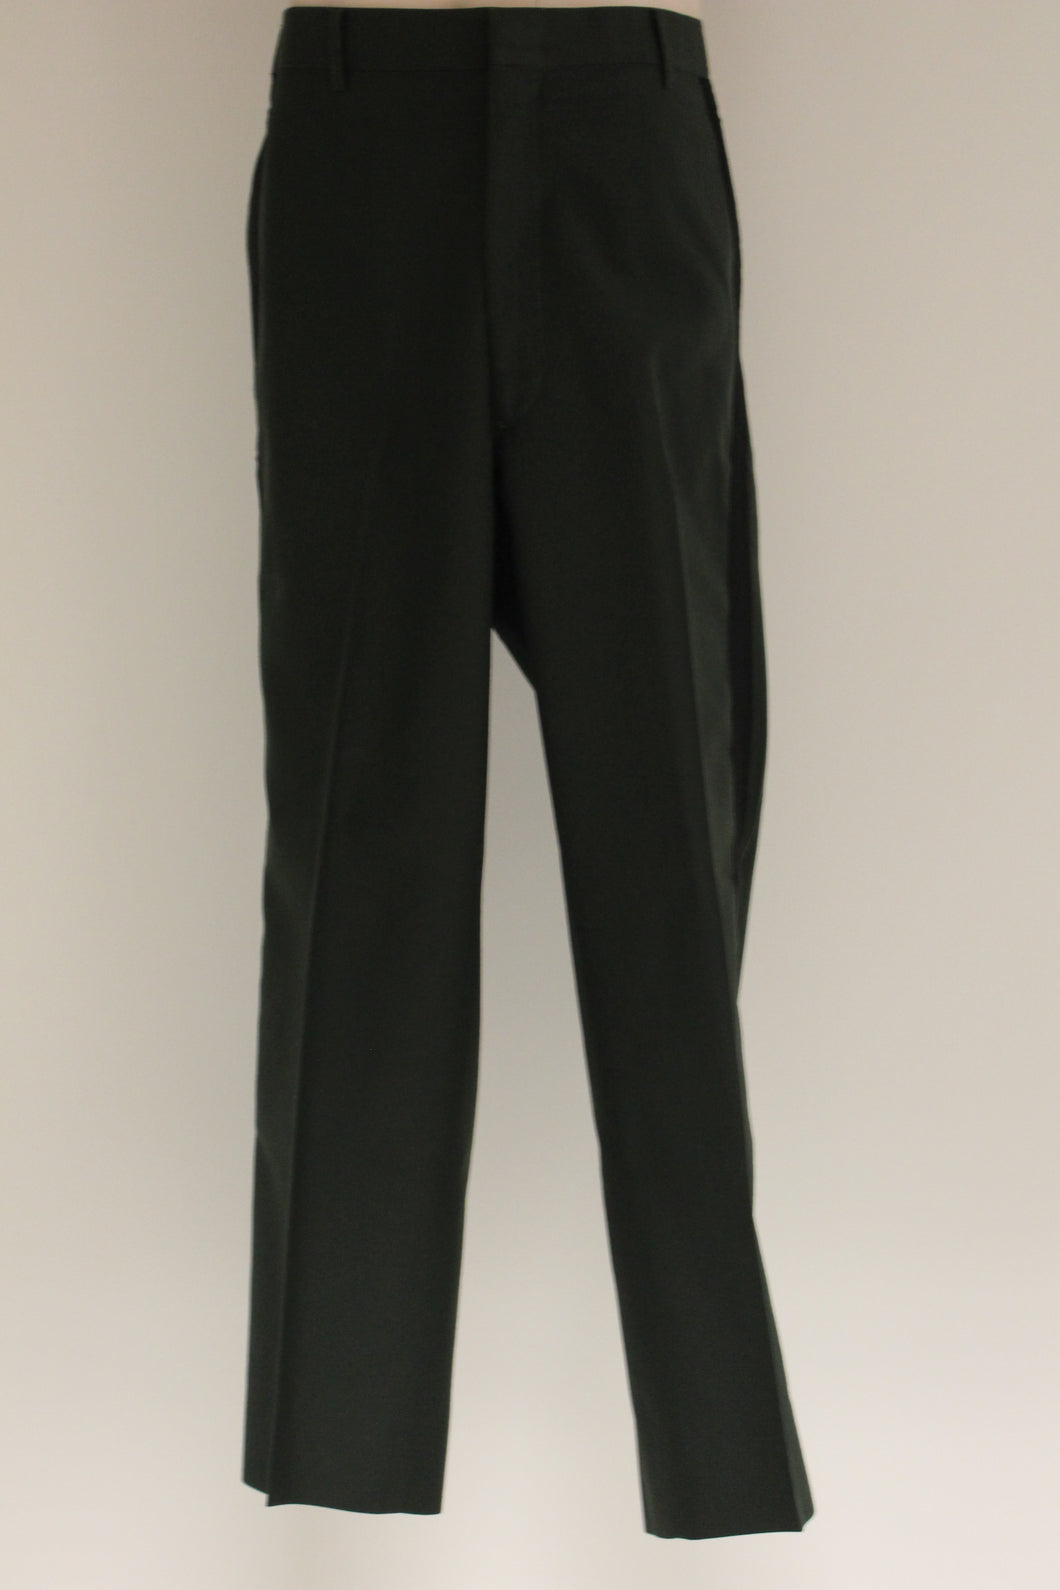 US Military Men's Green Dress Trousers with Black Stripe, 8405-01-341-9998, Size: 35R